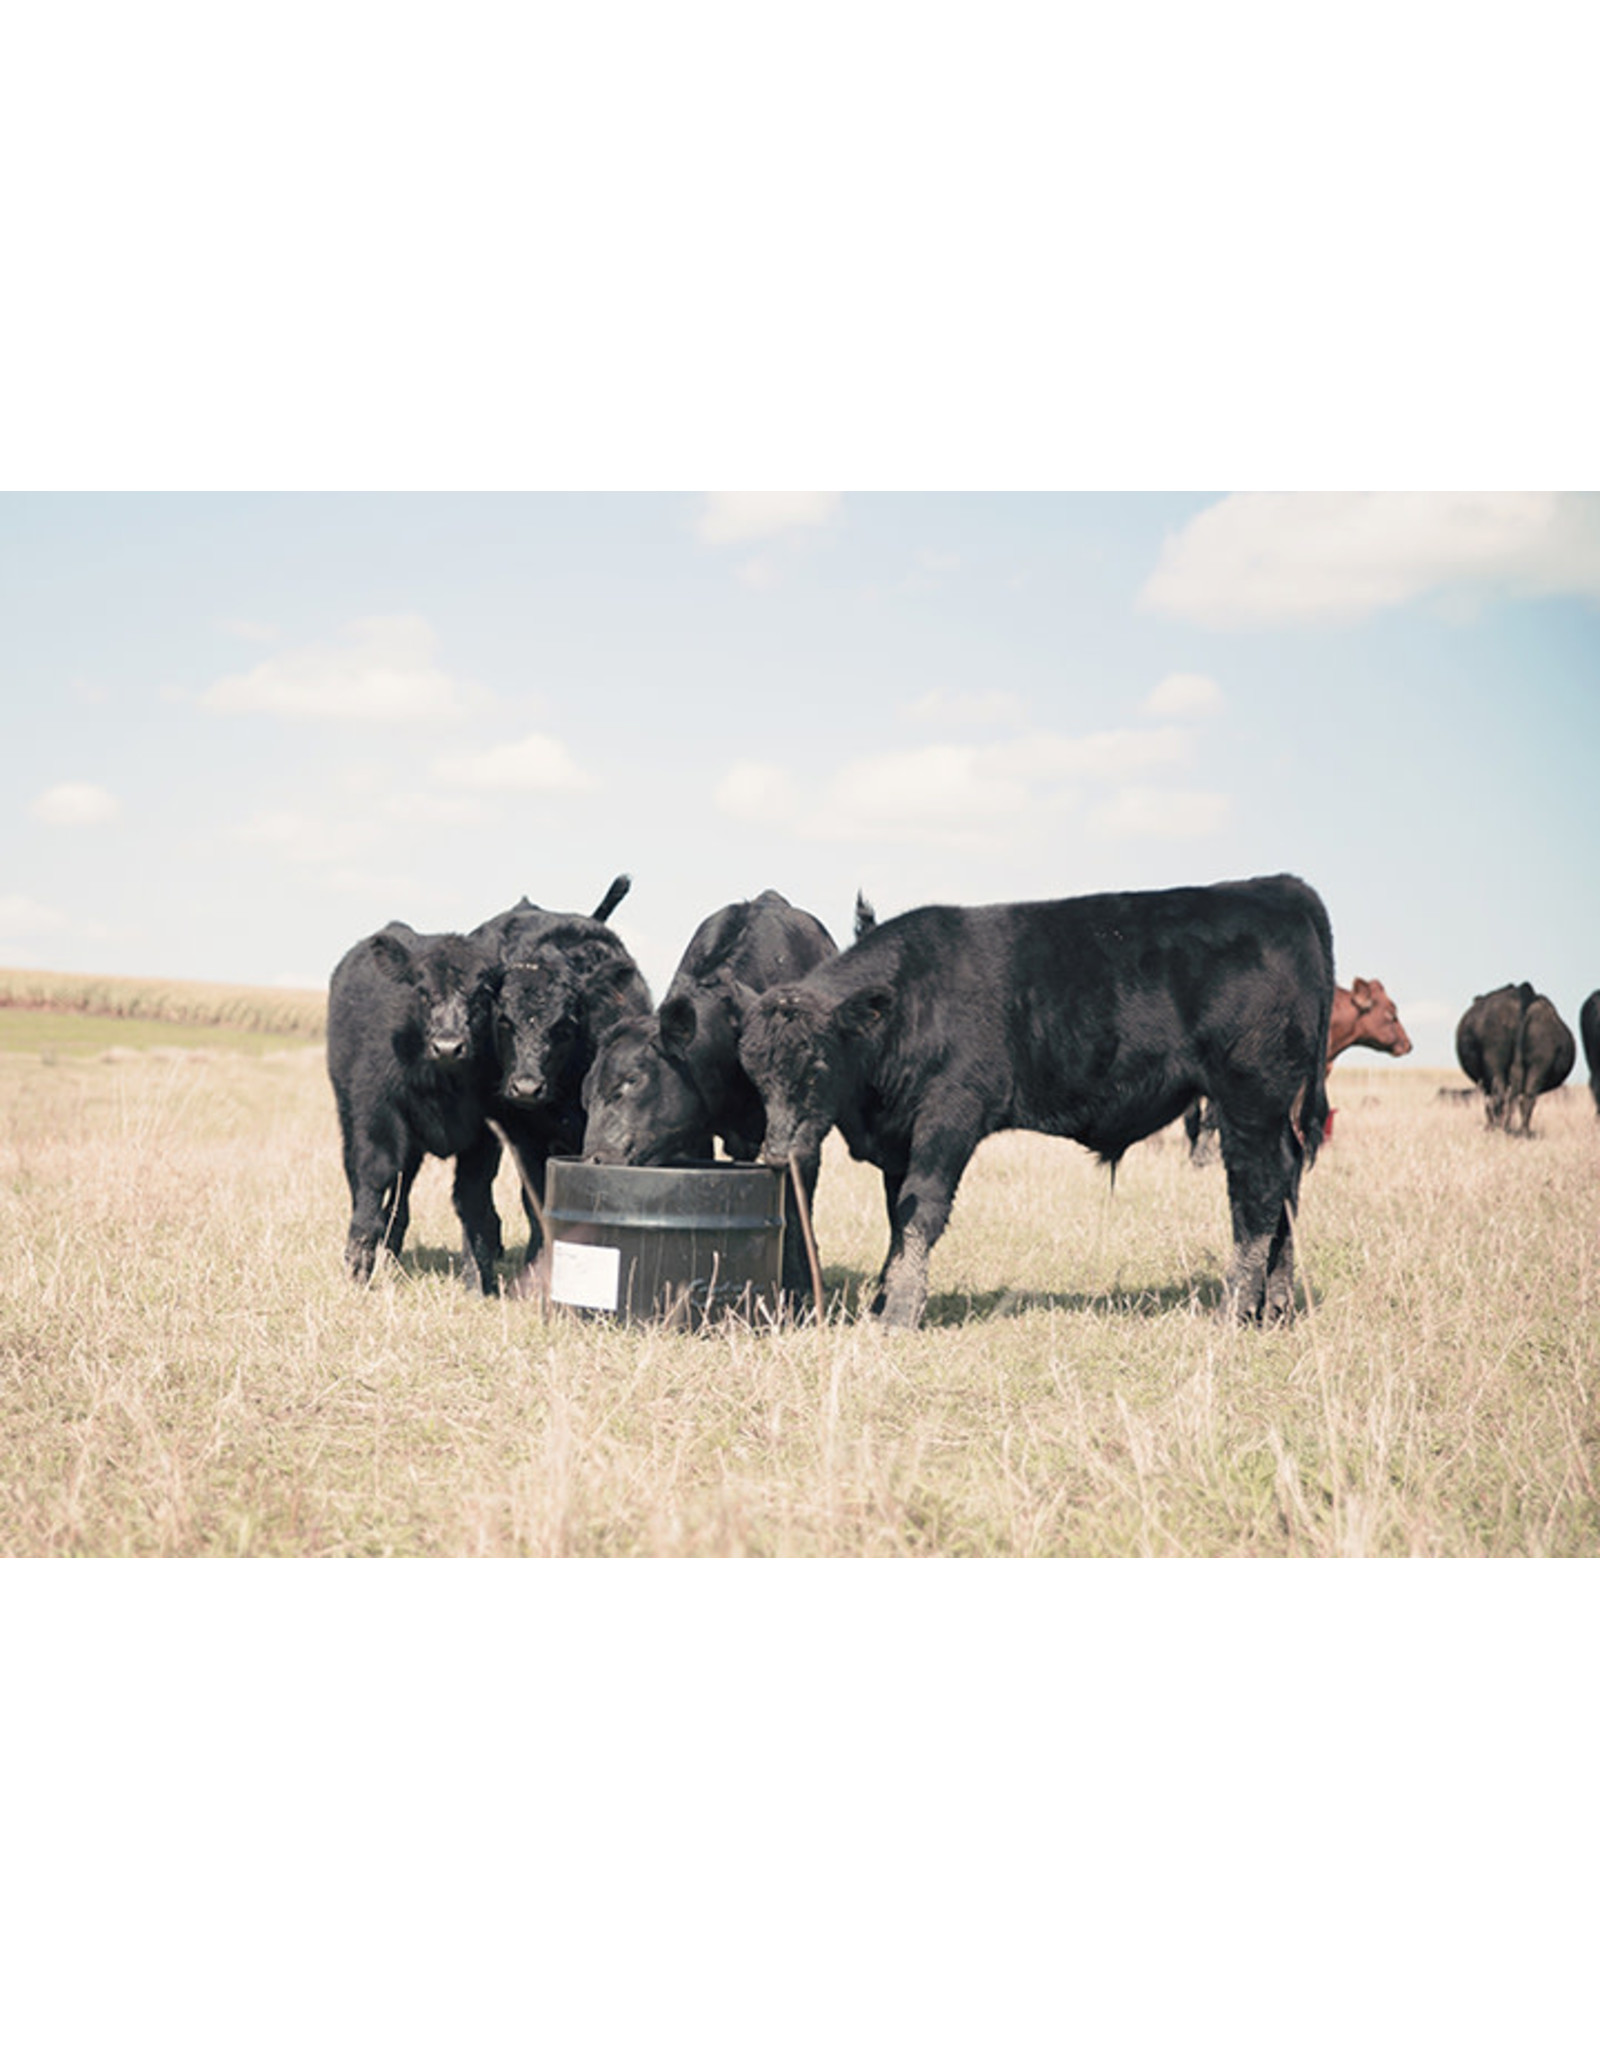 Brigade Steel 250lbs - Ideally fortified and suited for weaning calves and cattle 45 days prior to breeding. Statistically shown to add .38 lbs average daily gain, decrease calf mortality by half, and decrease incidences calf illness by almost HALF.